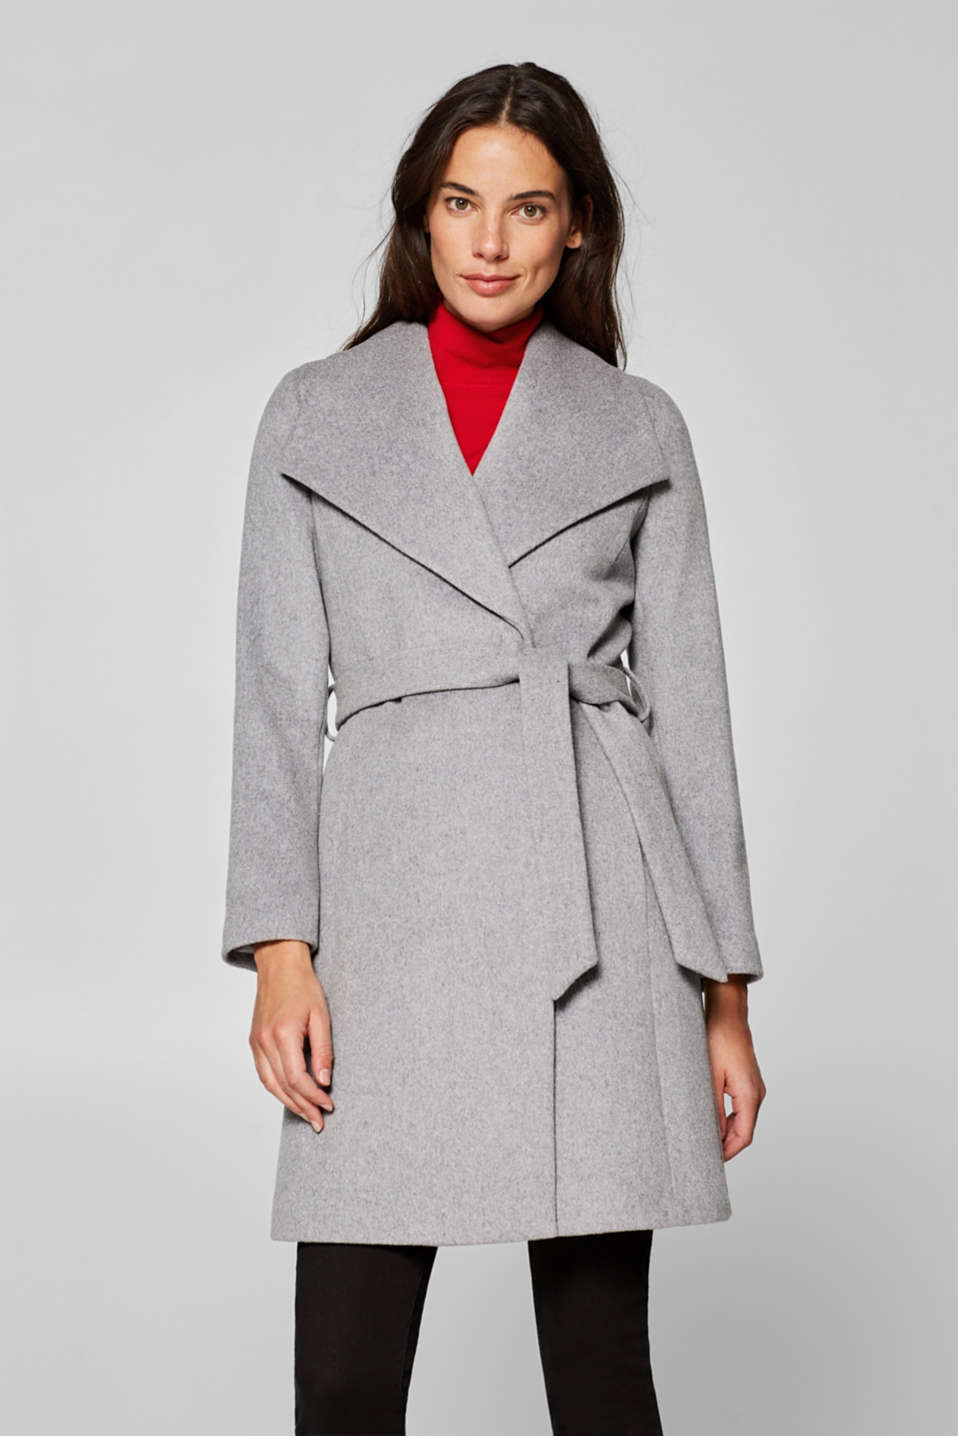 Esprit - Wool blend with cashmere: Coat with large collar